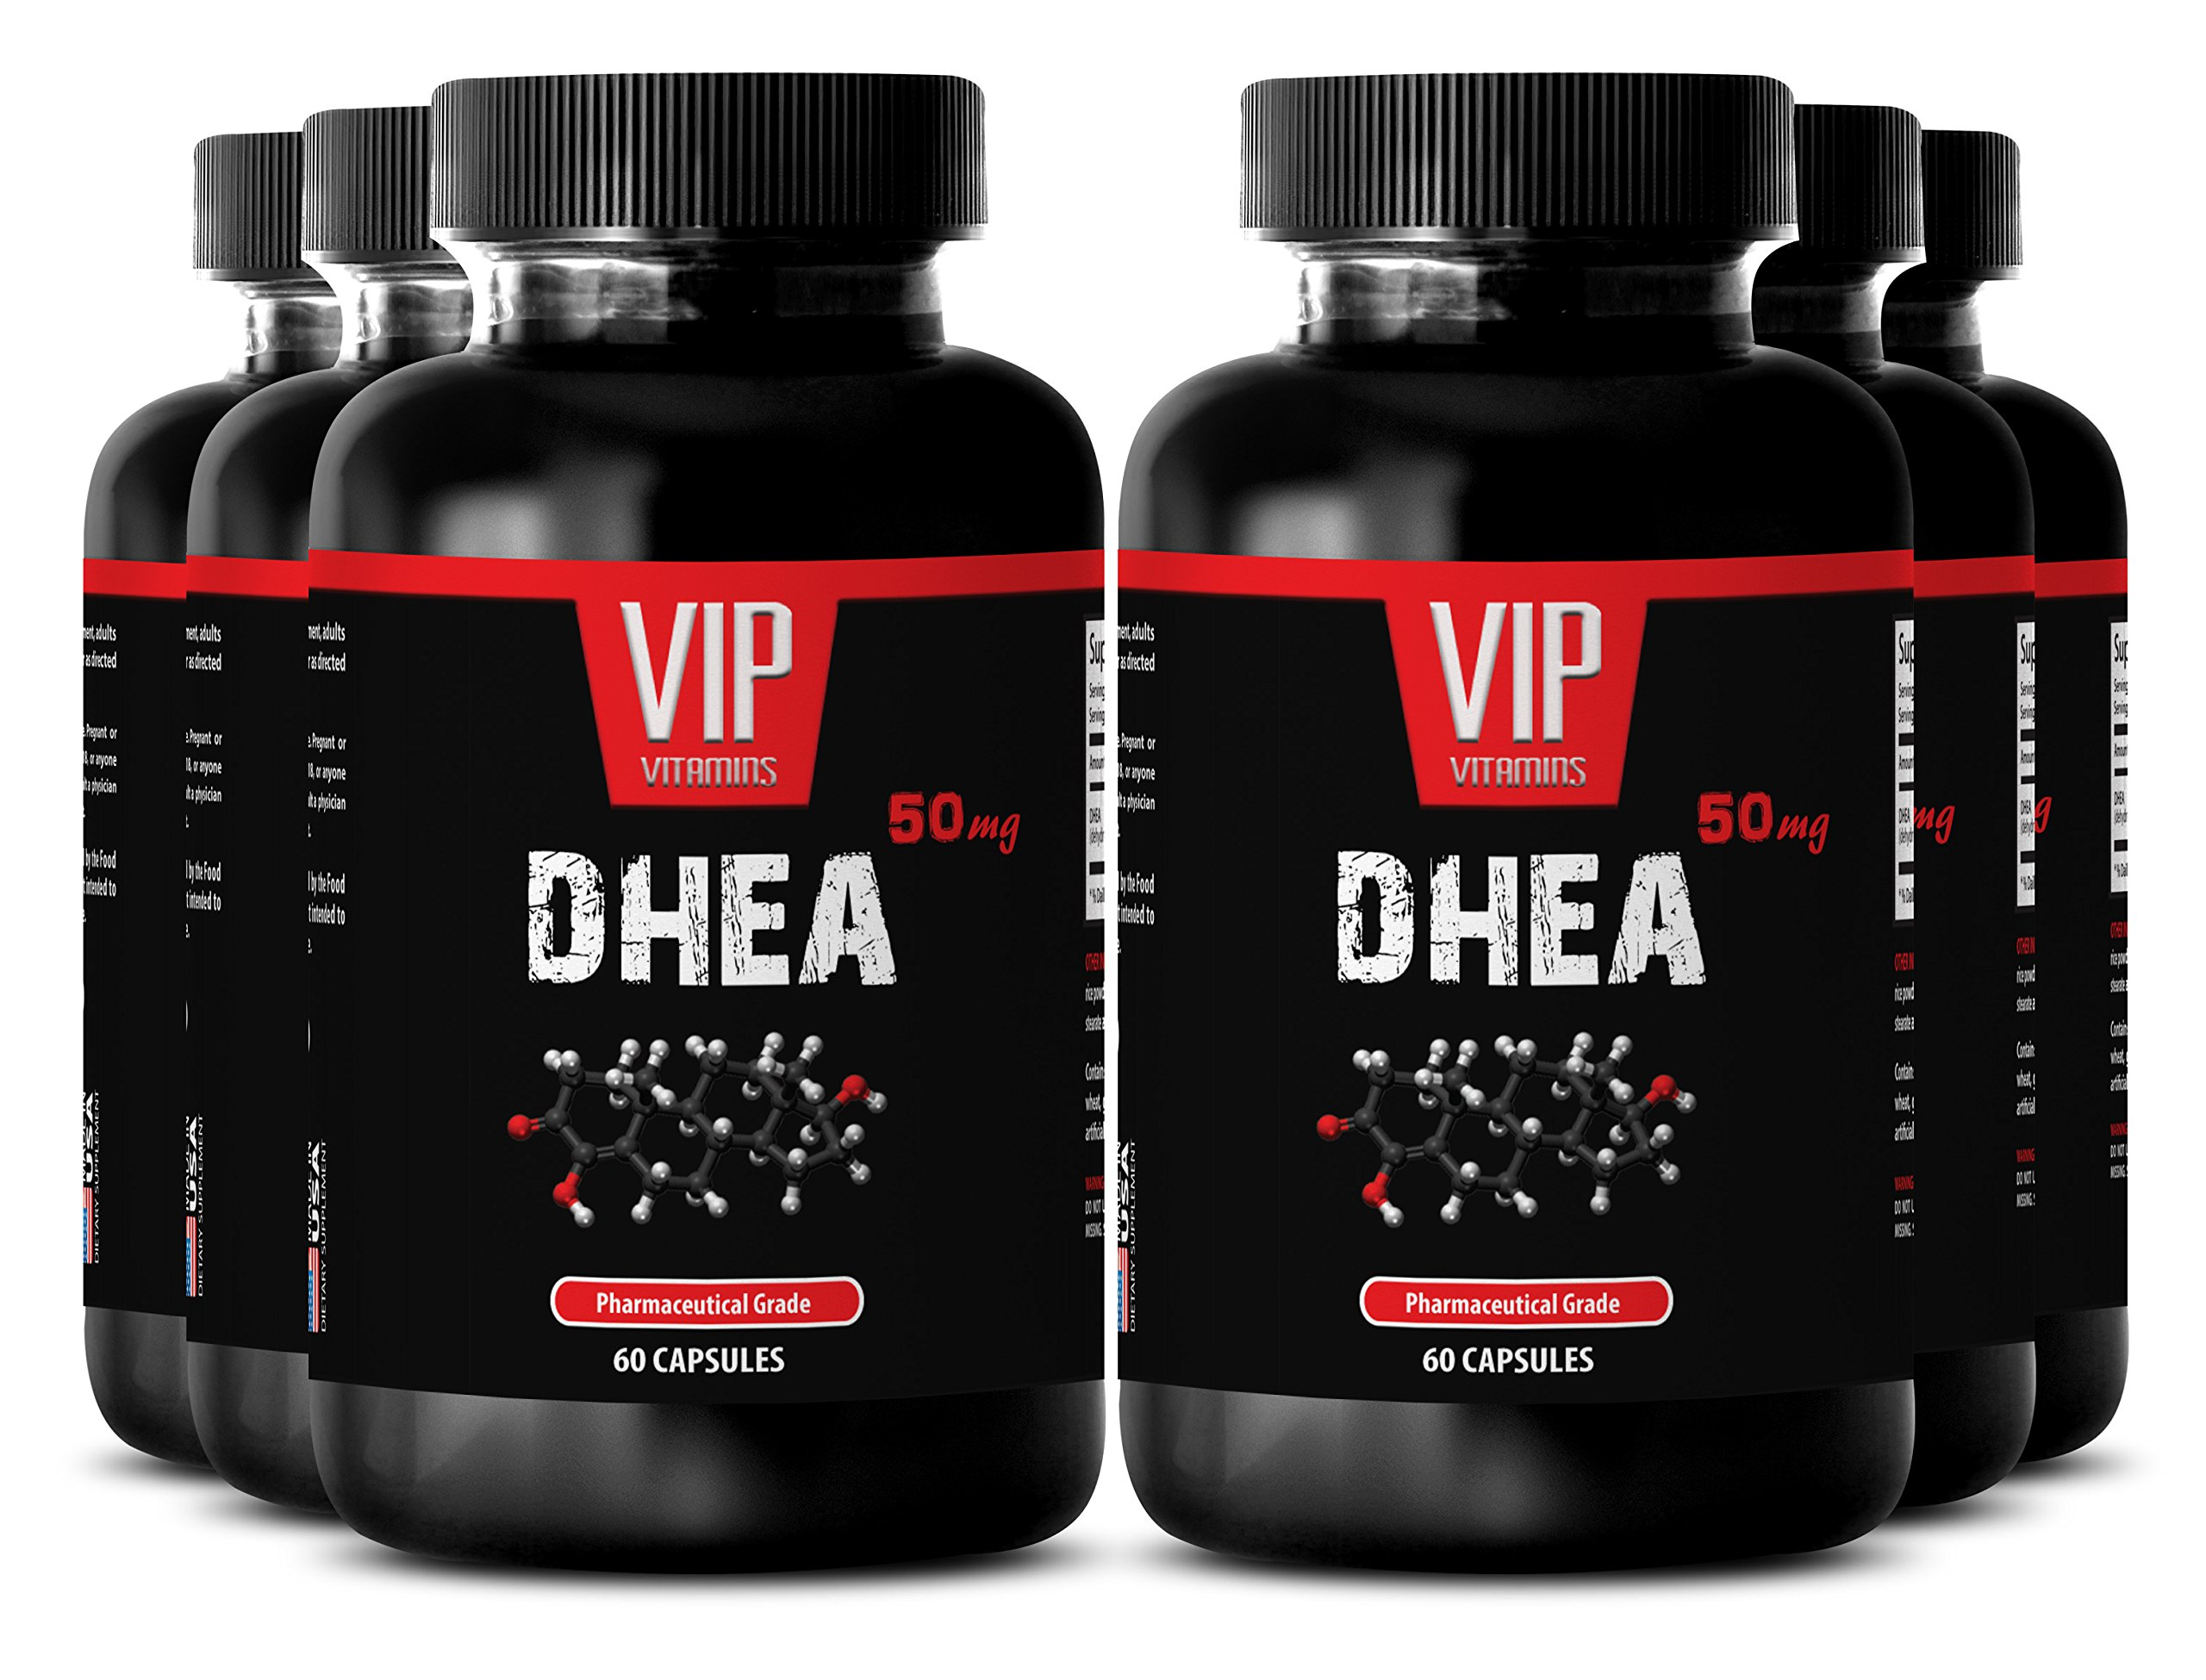 Weight loss - DHEA 50 mg - Weight management - 6 Bottles 360 Capsules by VIP VITAMINS